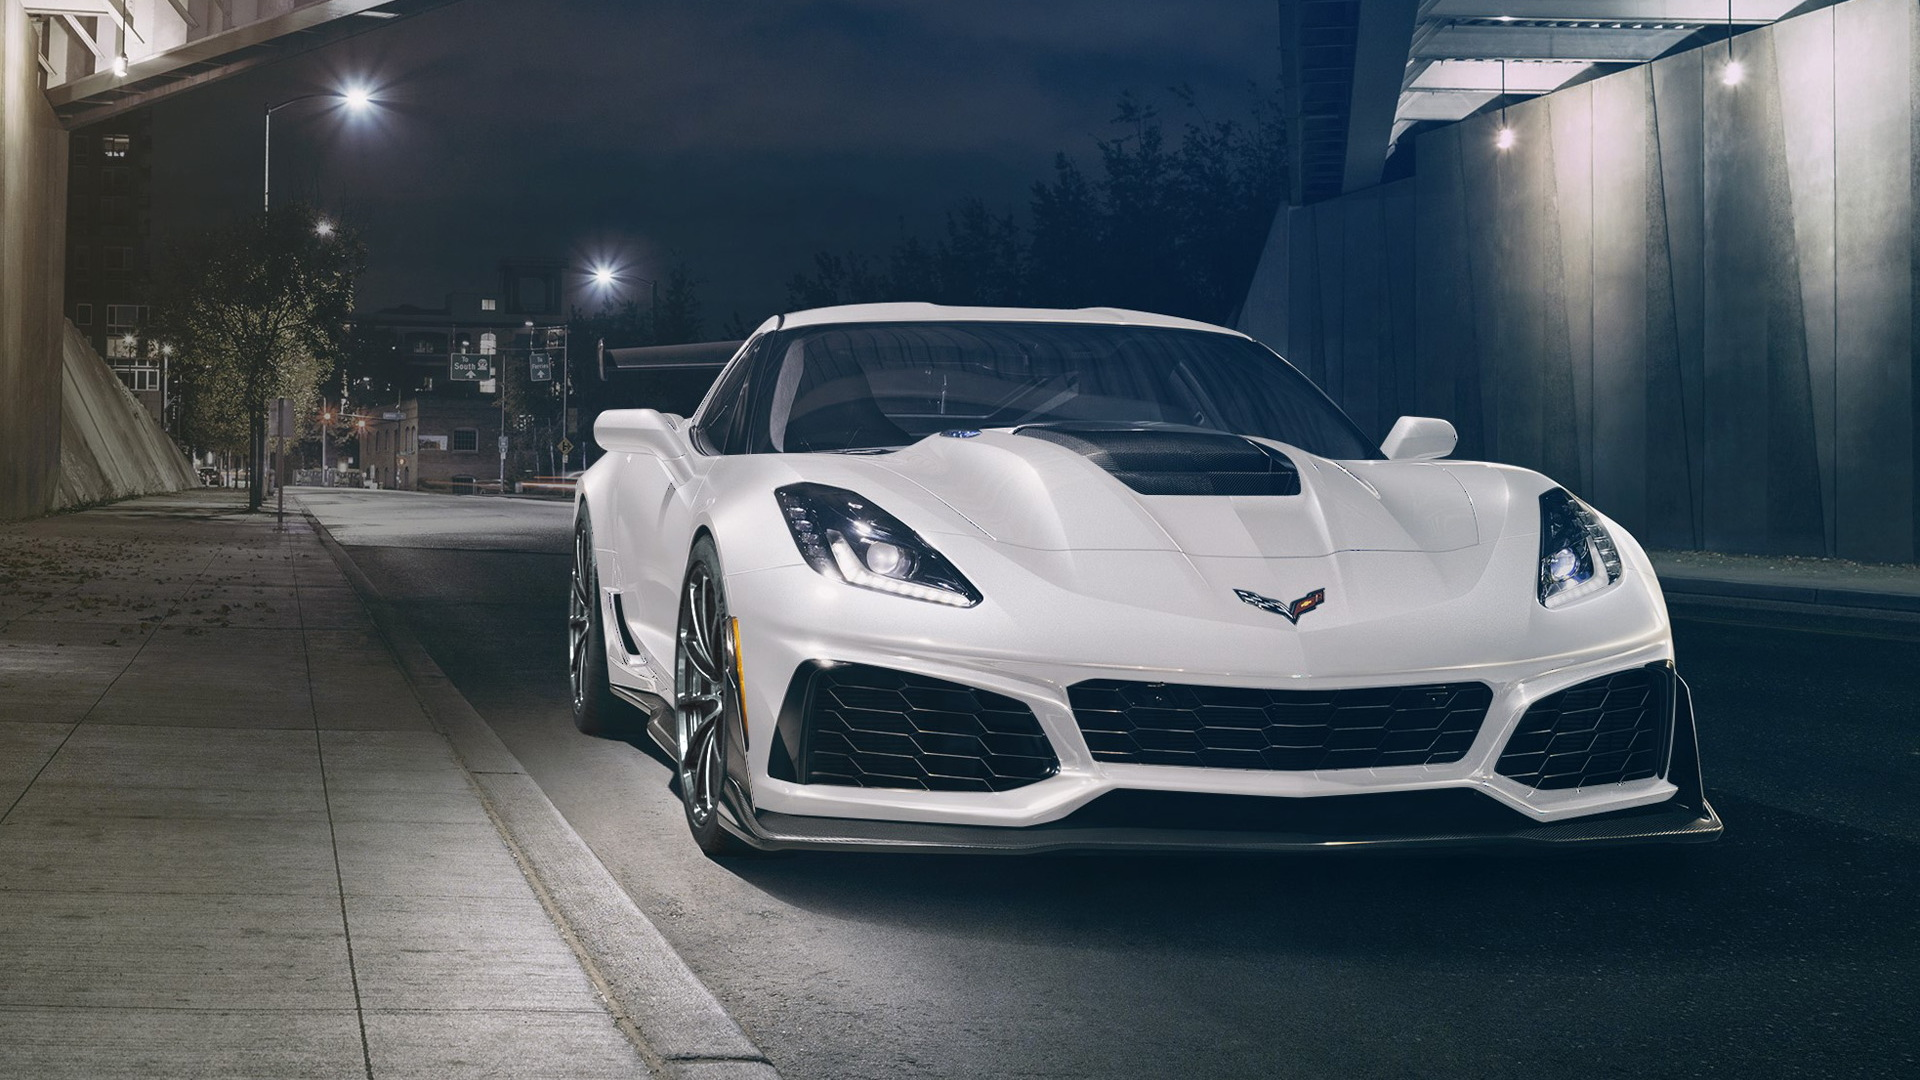 2019 Chevrolet Corvette ZR1 by Hennessey Performance Engineering